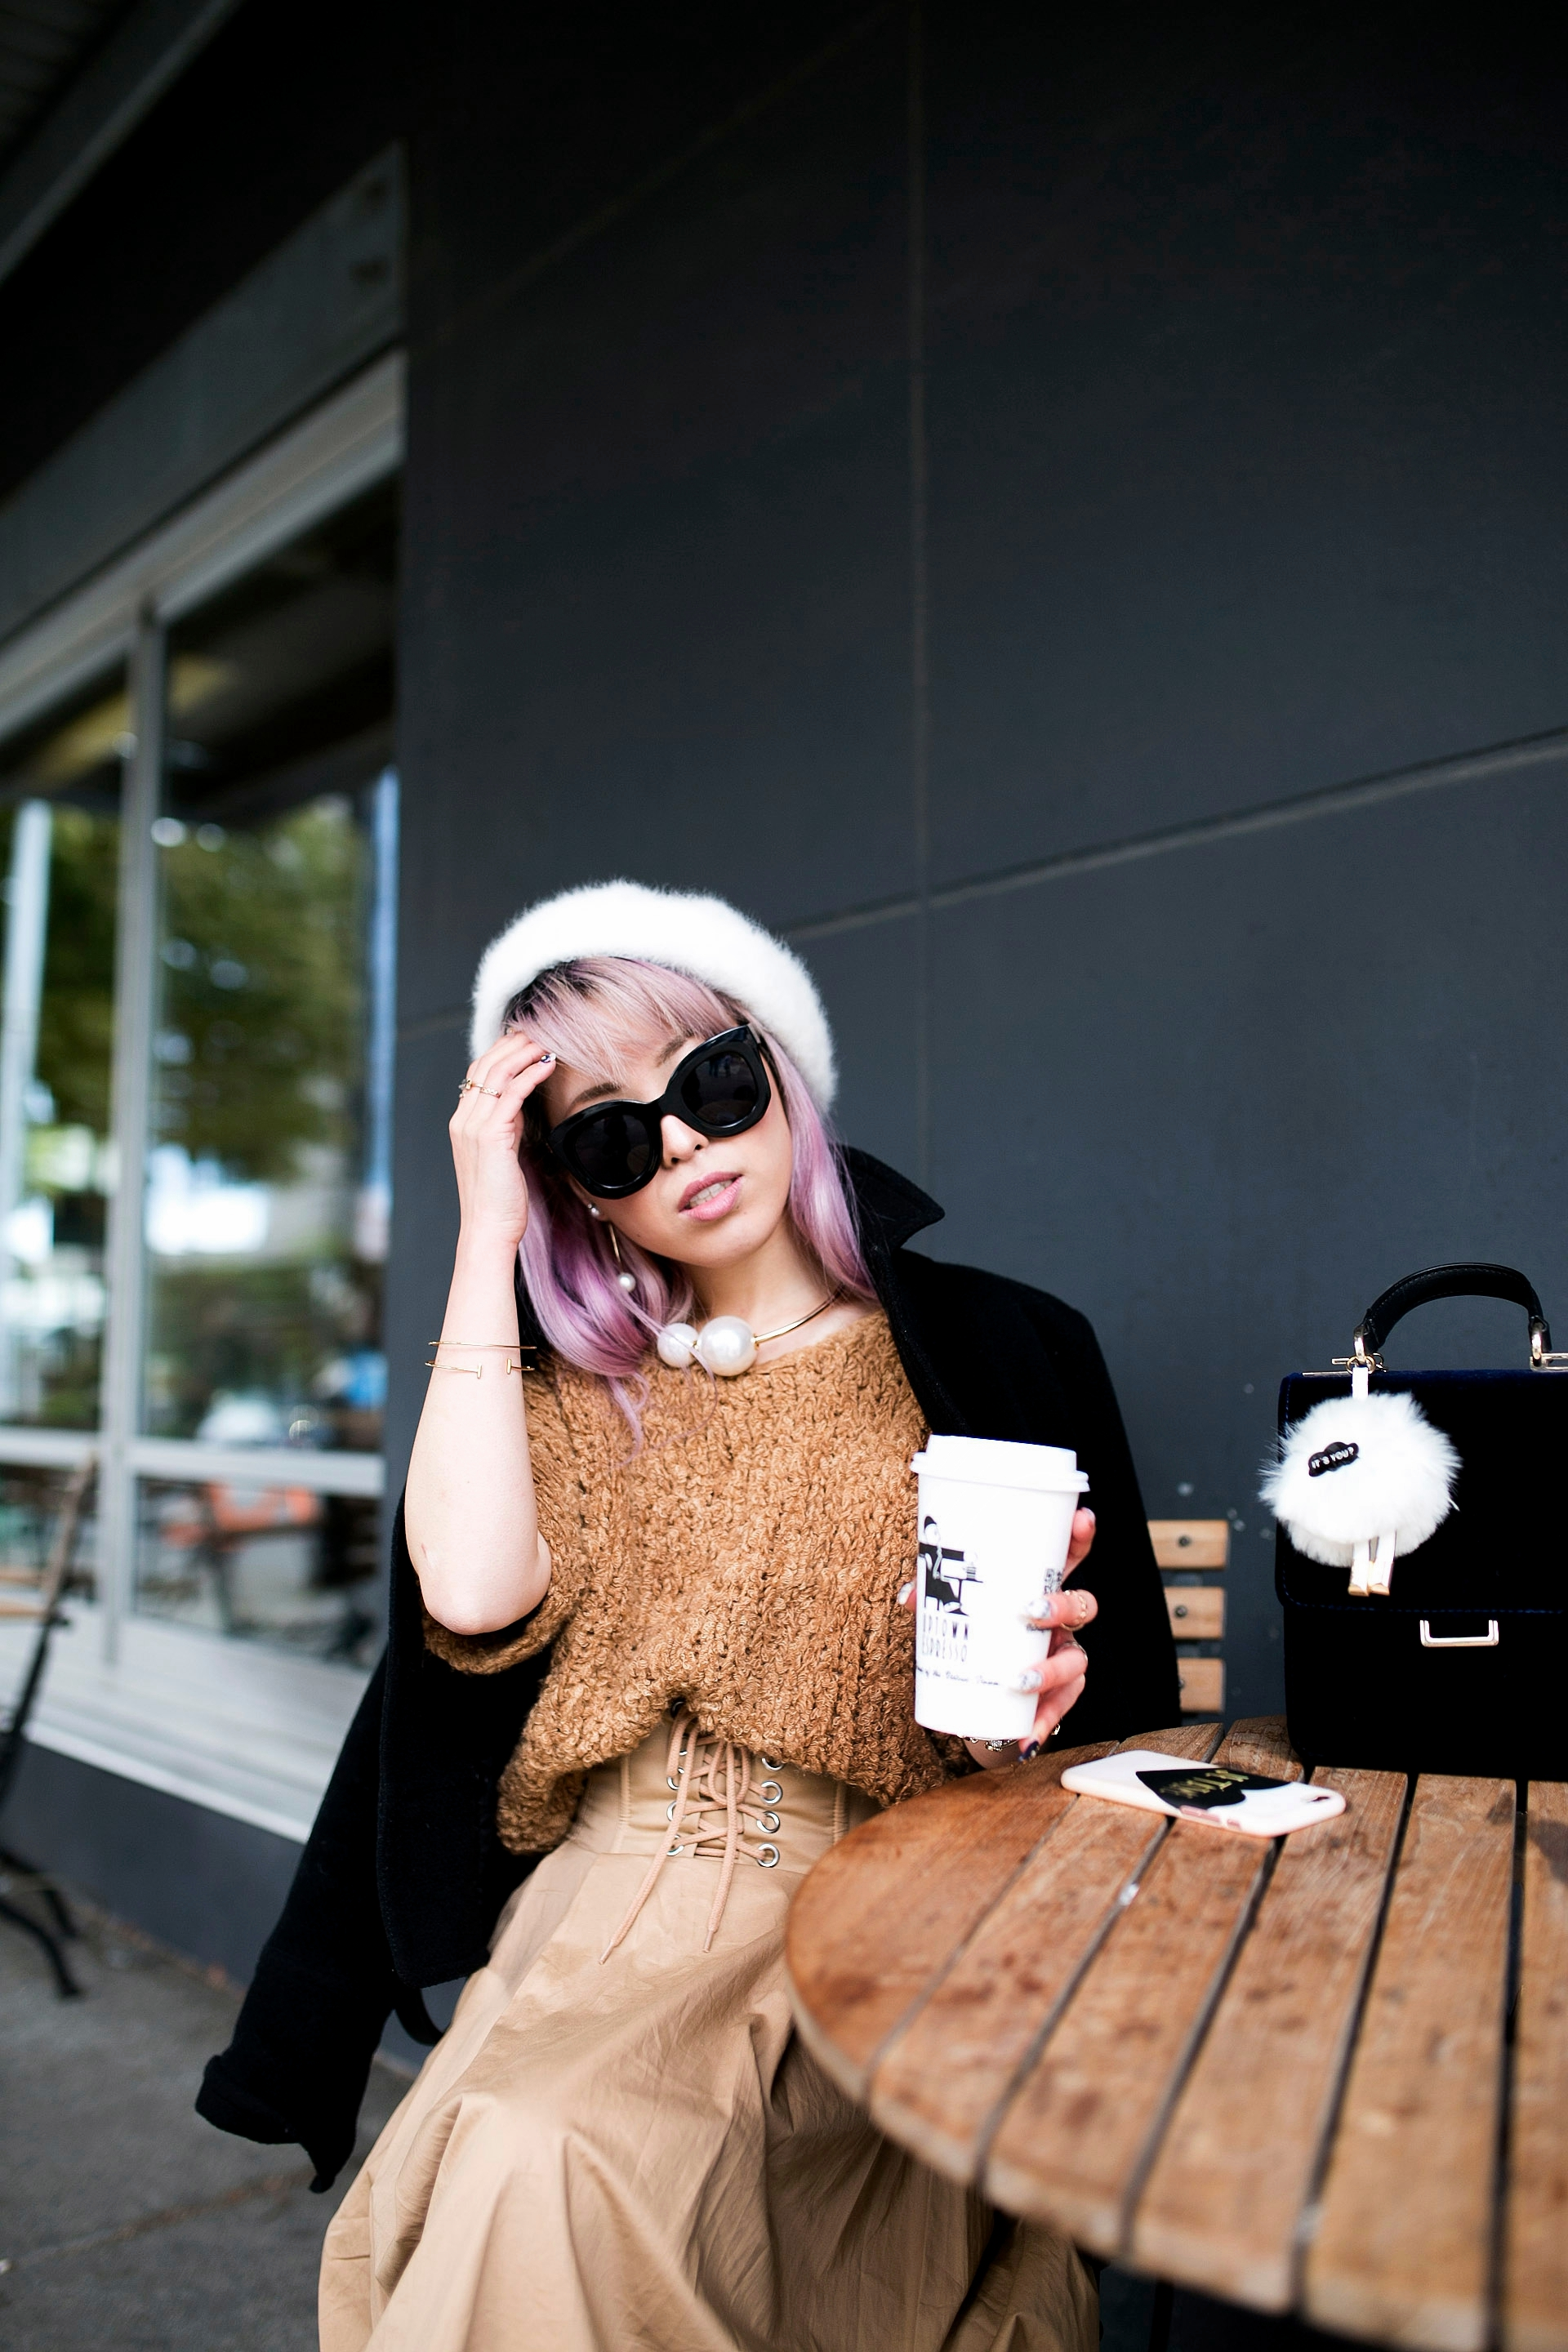 Forever 21 Fluffy White Beret, Express Pearl Collar Necklace, Thrifted Teddy Camel Top, H&M High-waisted camel midi skirt, zara velvet bag, Forever 21 White Ankle Boots, Aika's Love Closet, Seattle Fashion Style Blogger, Japanese, pink hair, street style, petite fashion  14